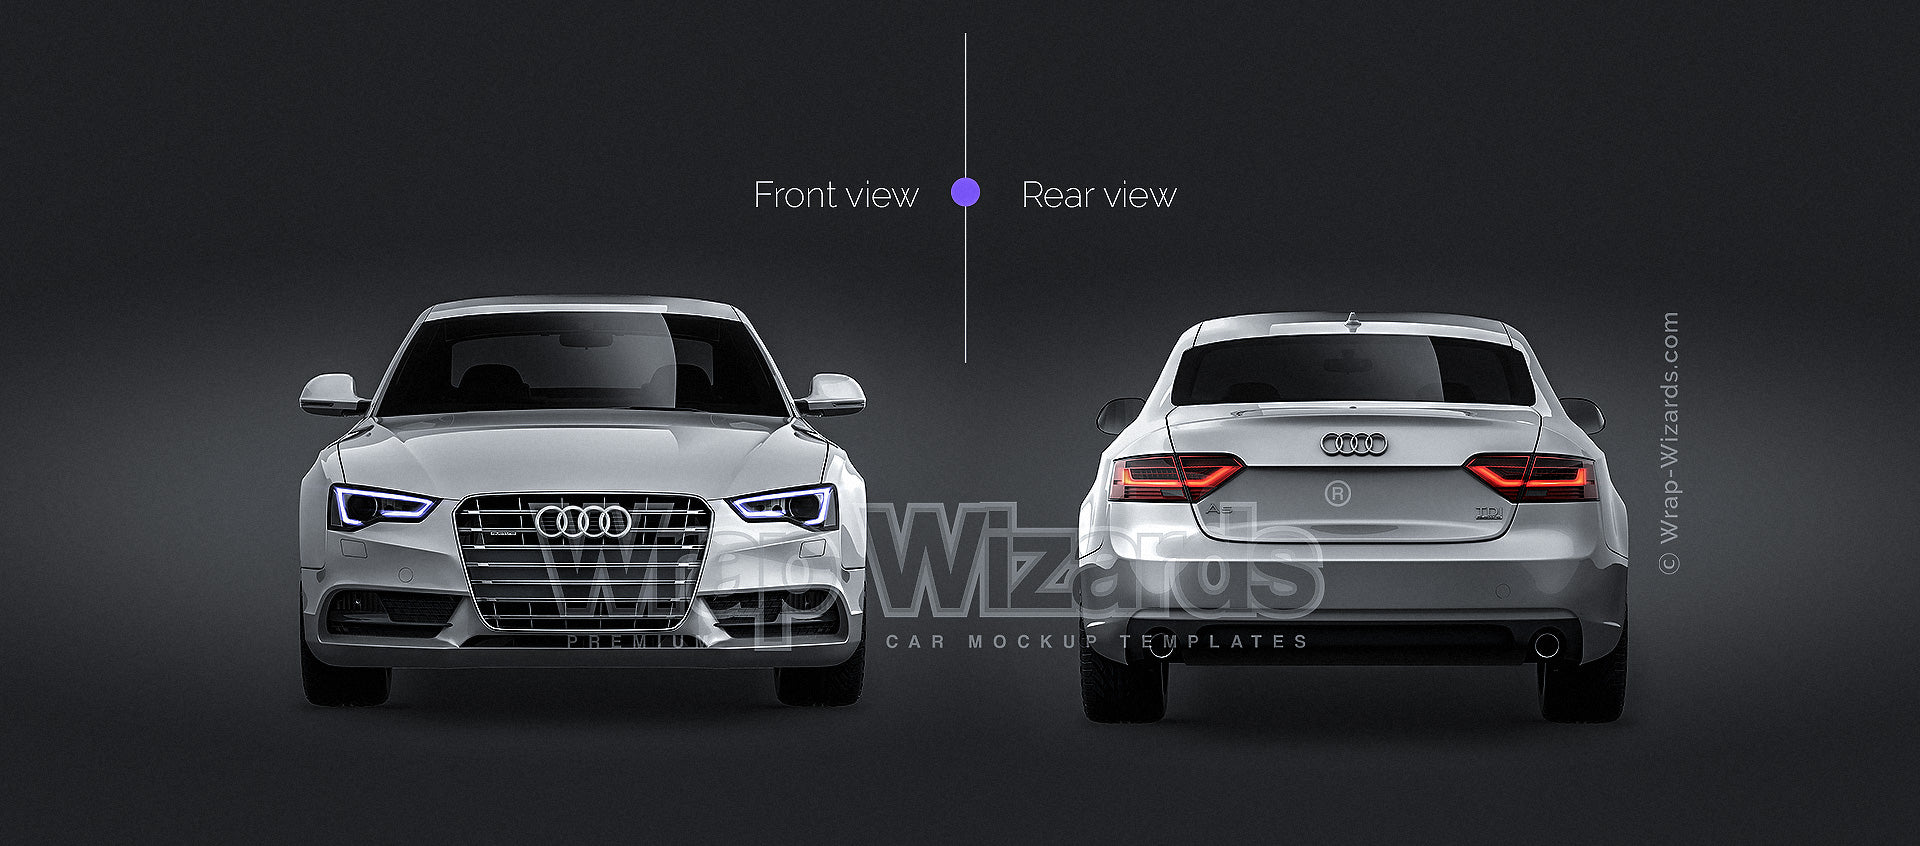 Audi A5 coupe 2012- all sides Car Mockup Template.psd